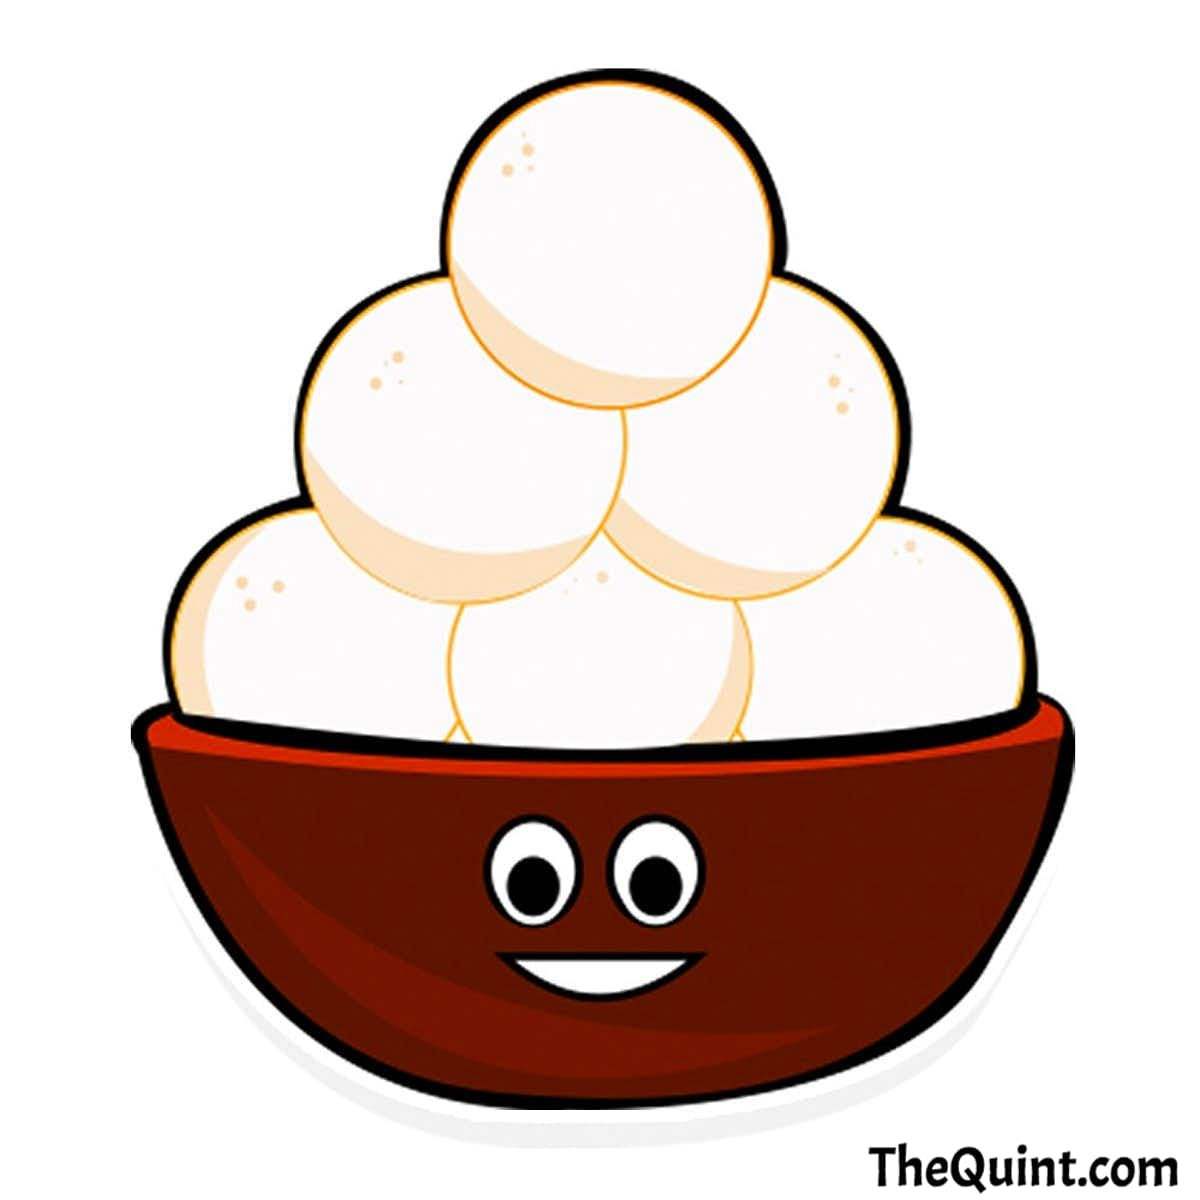 If we can have a rice cake emoji, why not a rosogolla one?